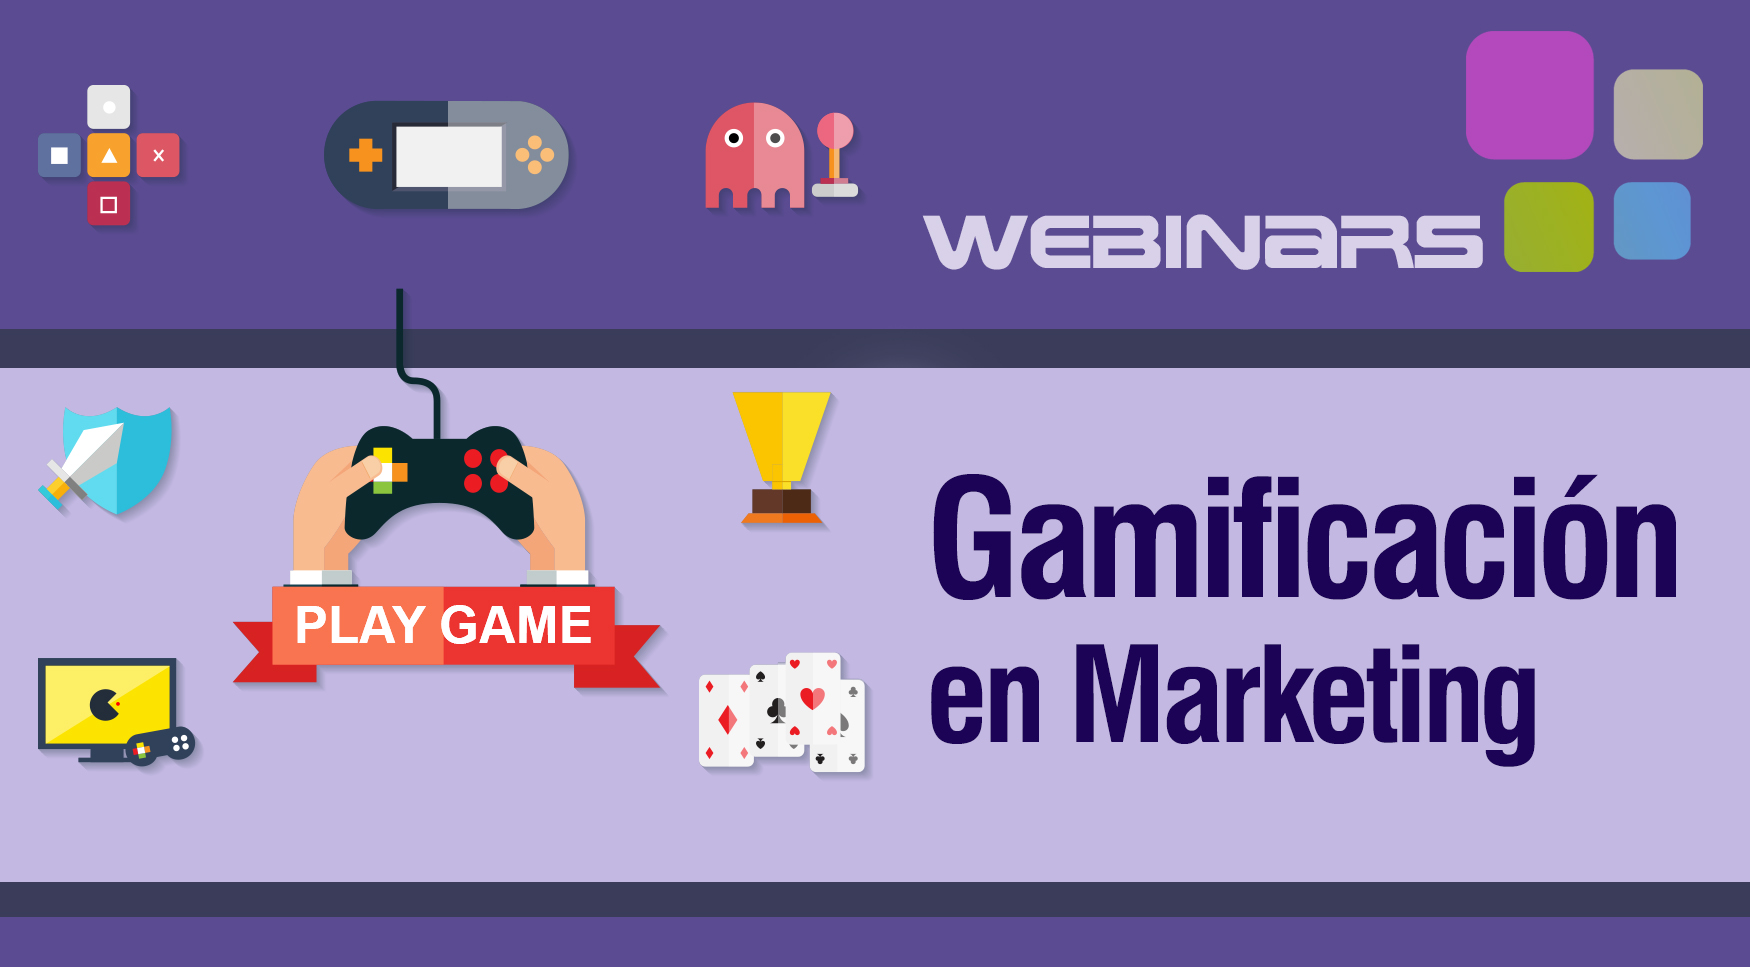 Gamificación en Marketing